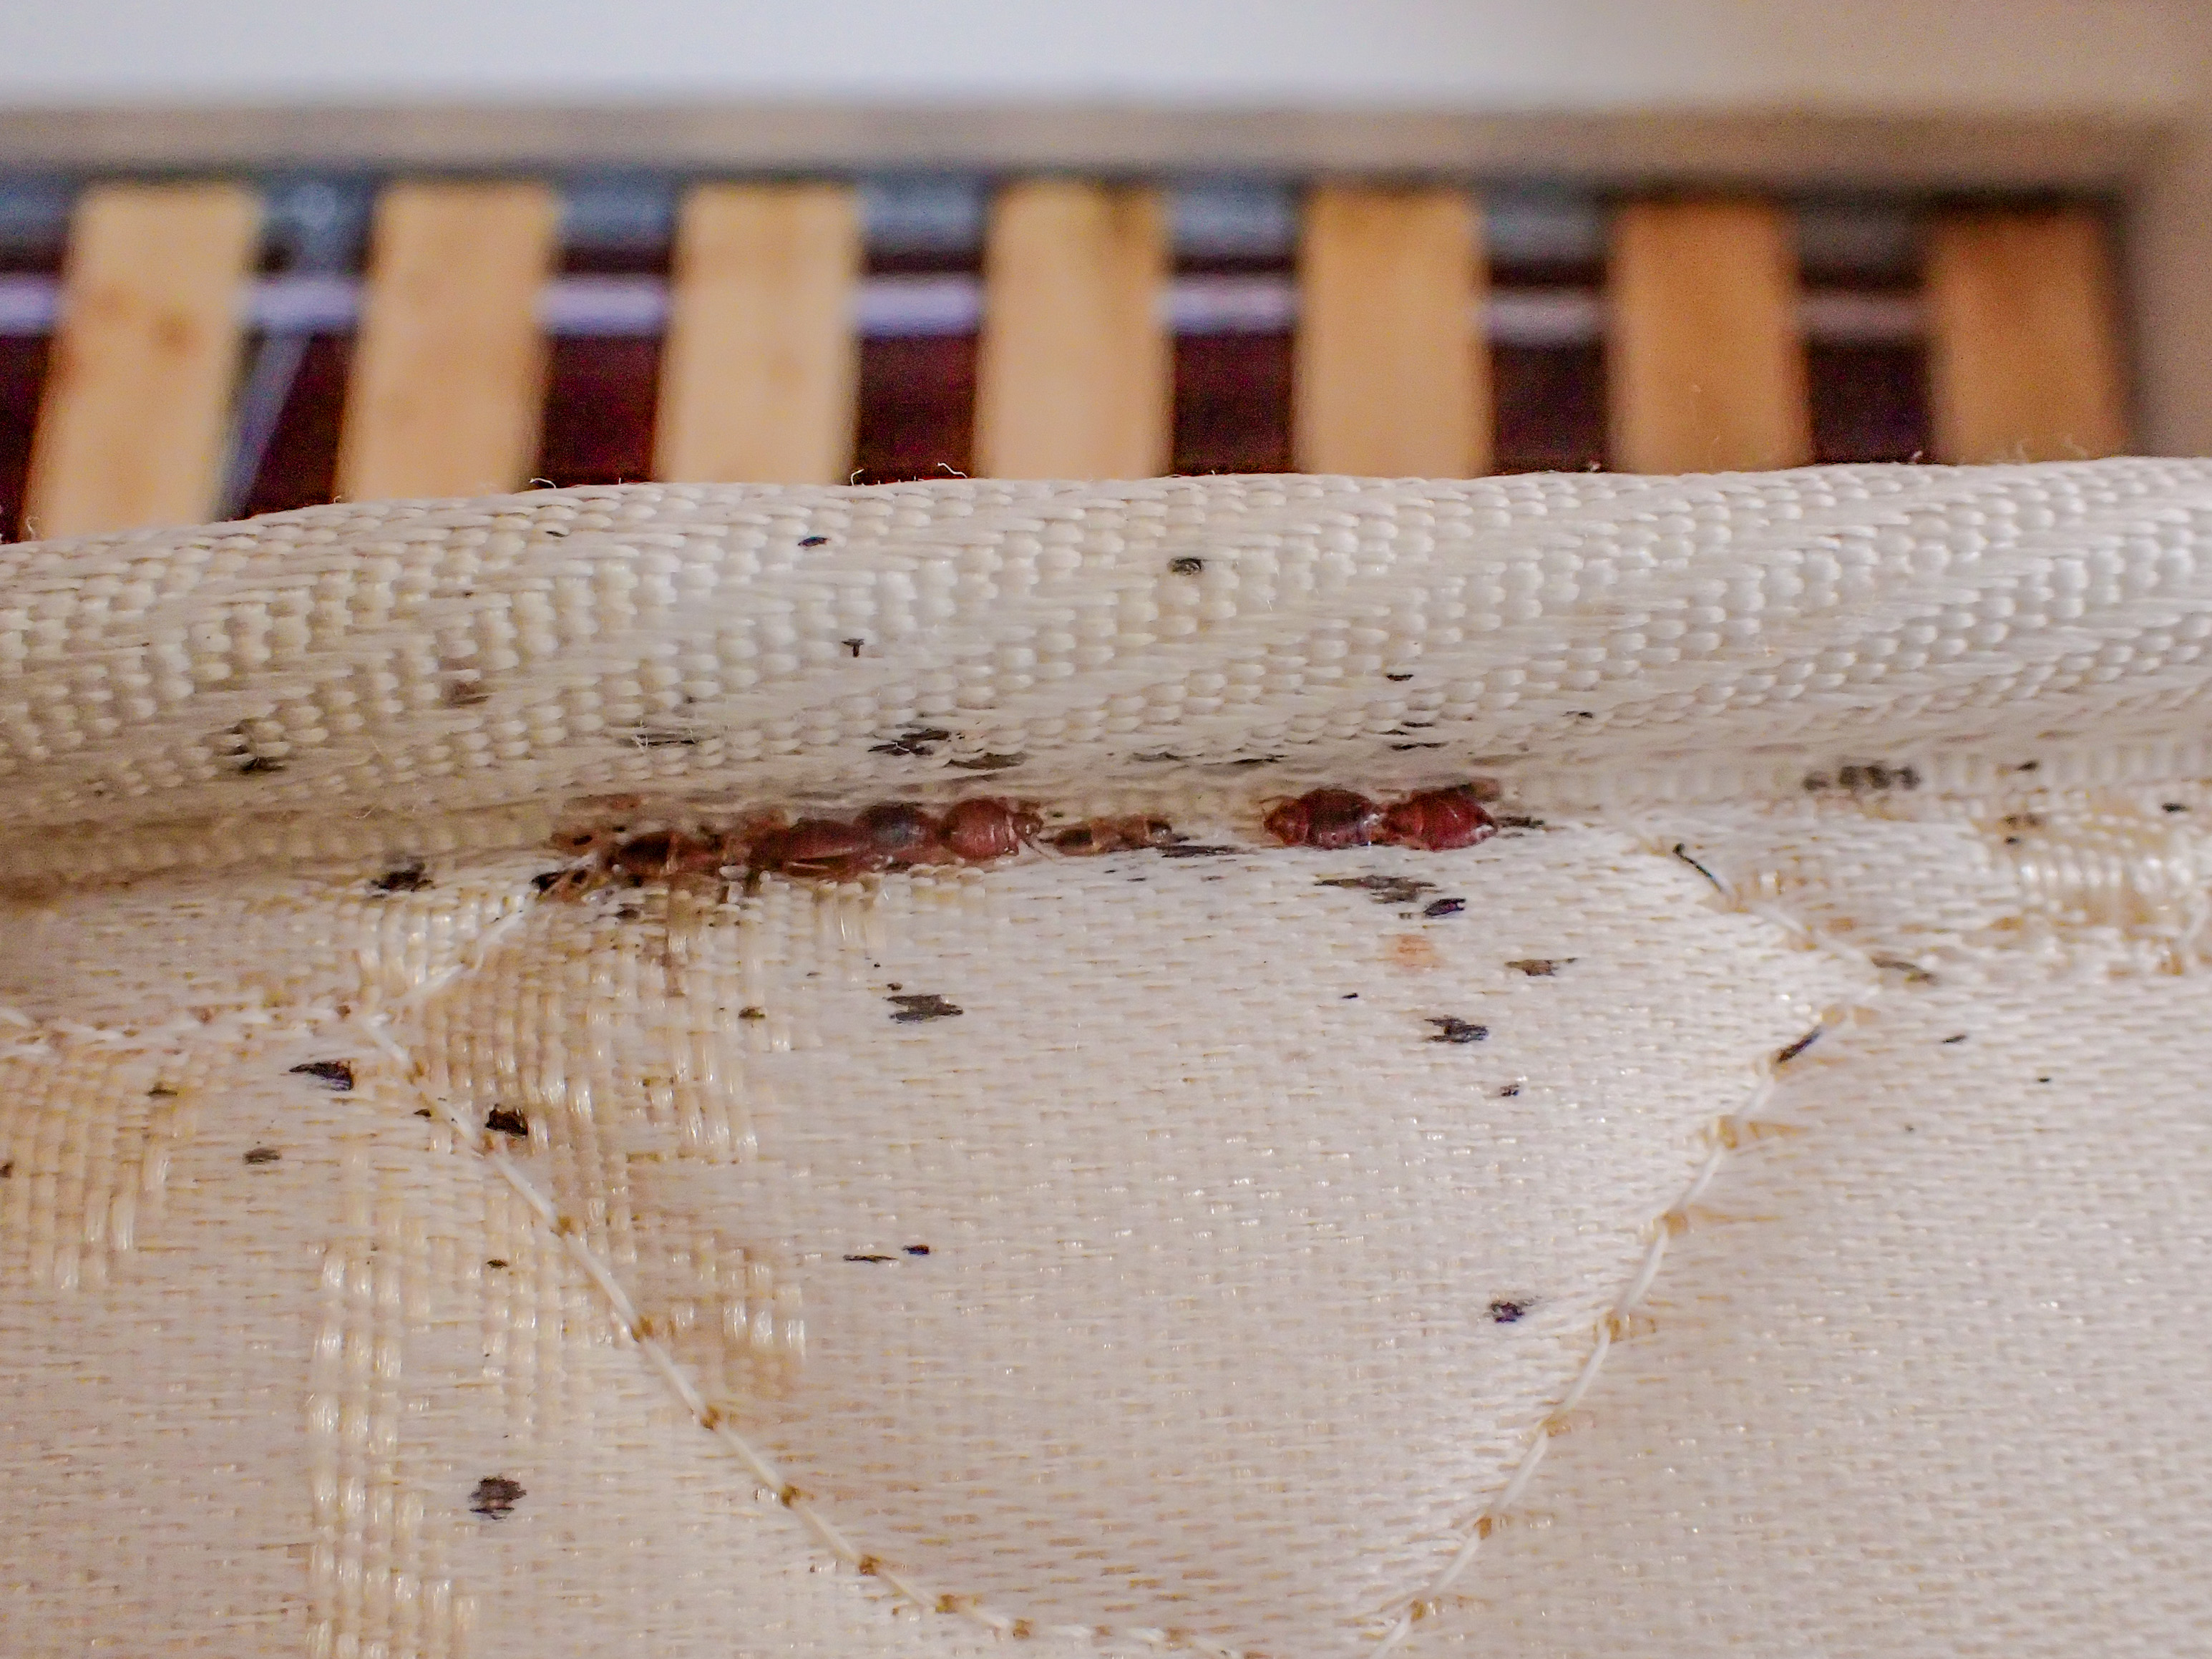 Bed Bugs Blood Stains and Black Markings along Mattress Piping.